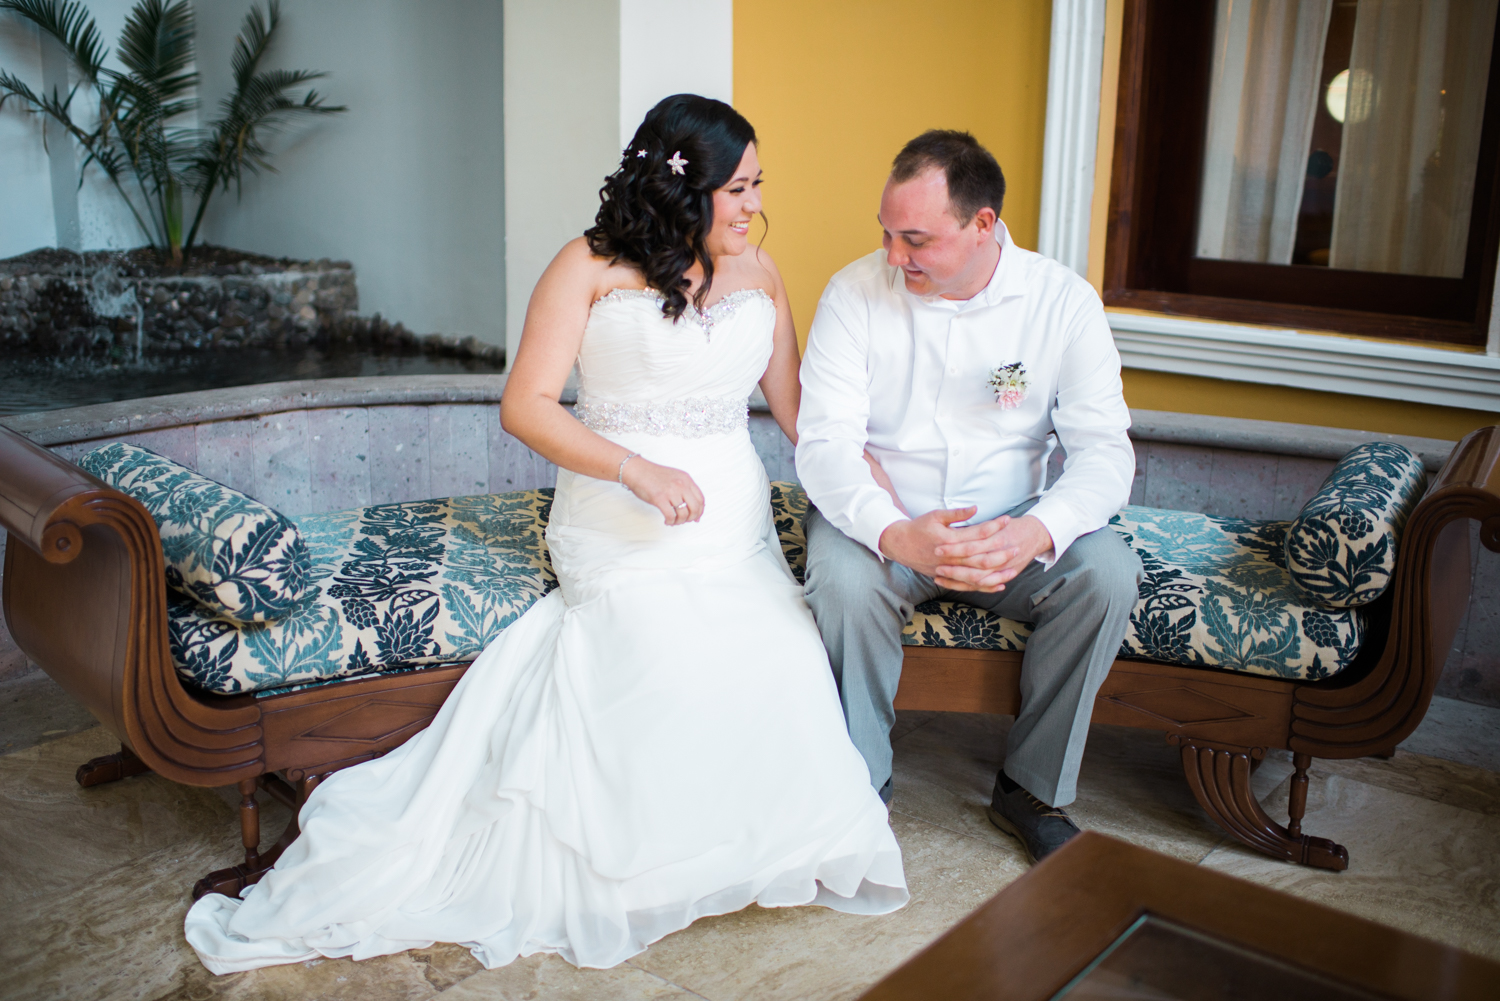 JadeandRyan-Montego-Bay-Jamaica-Wedding-Iberostar-Resort-Beach-38.jpg